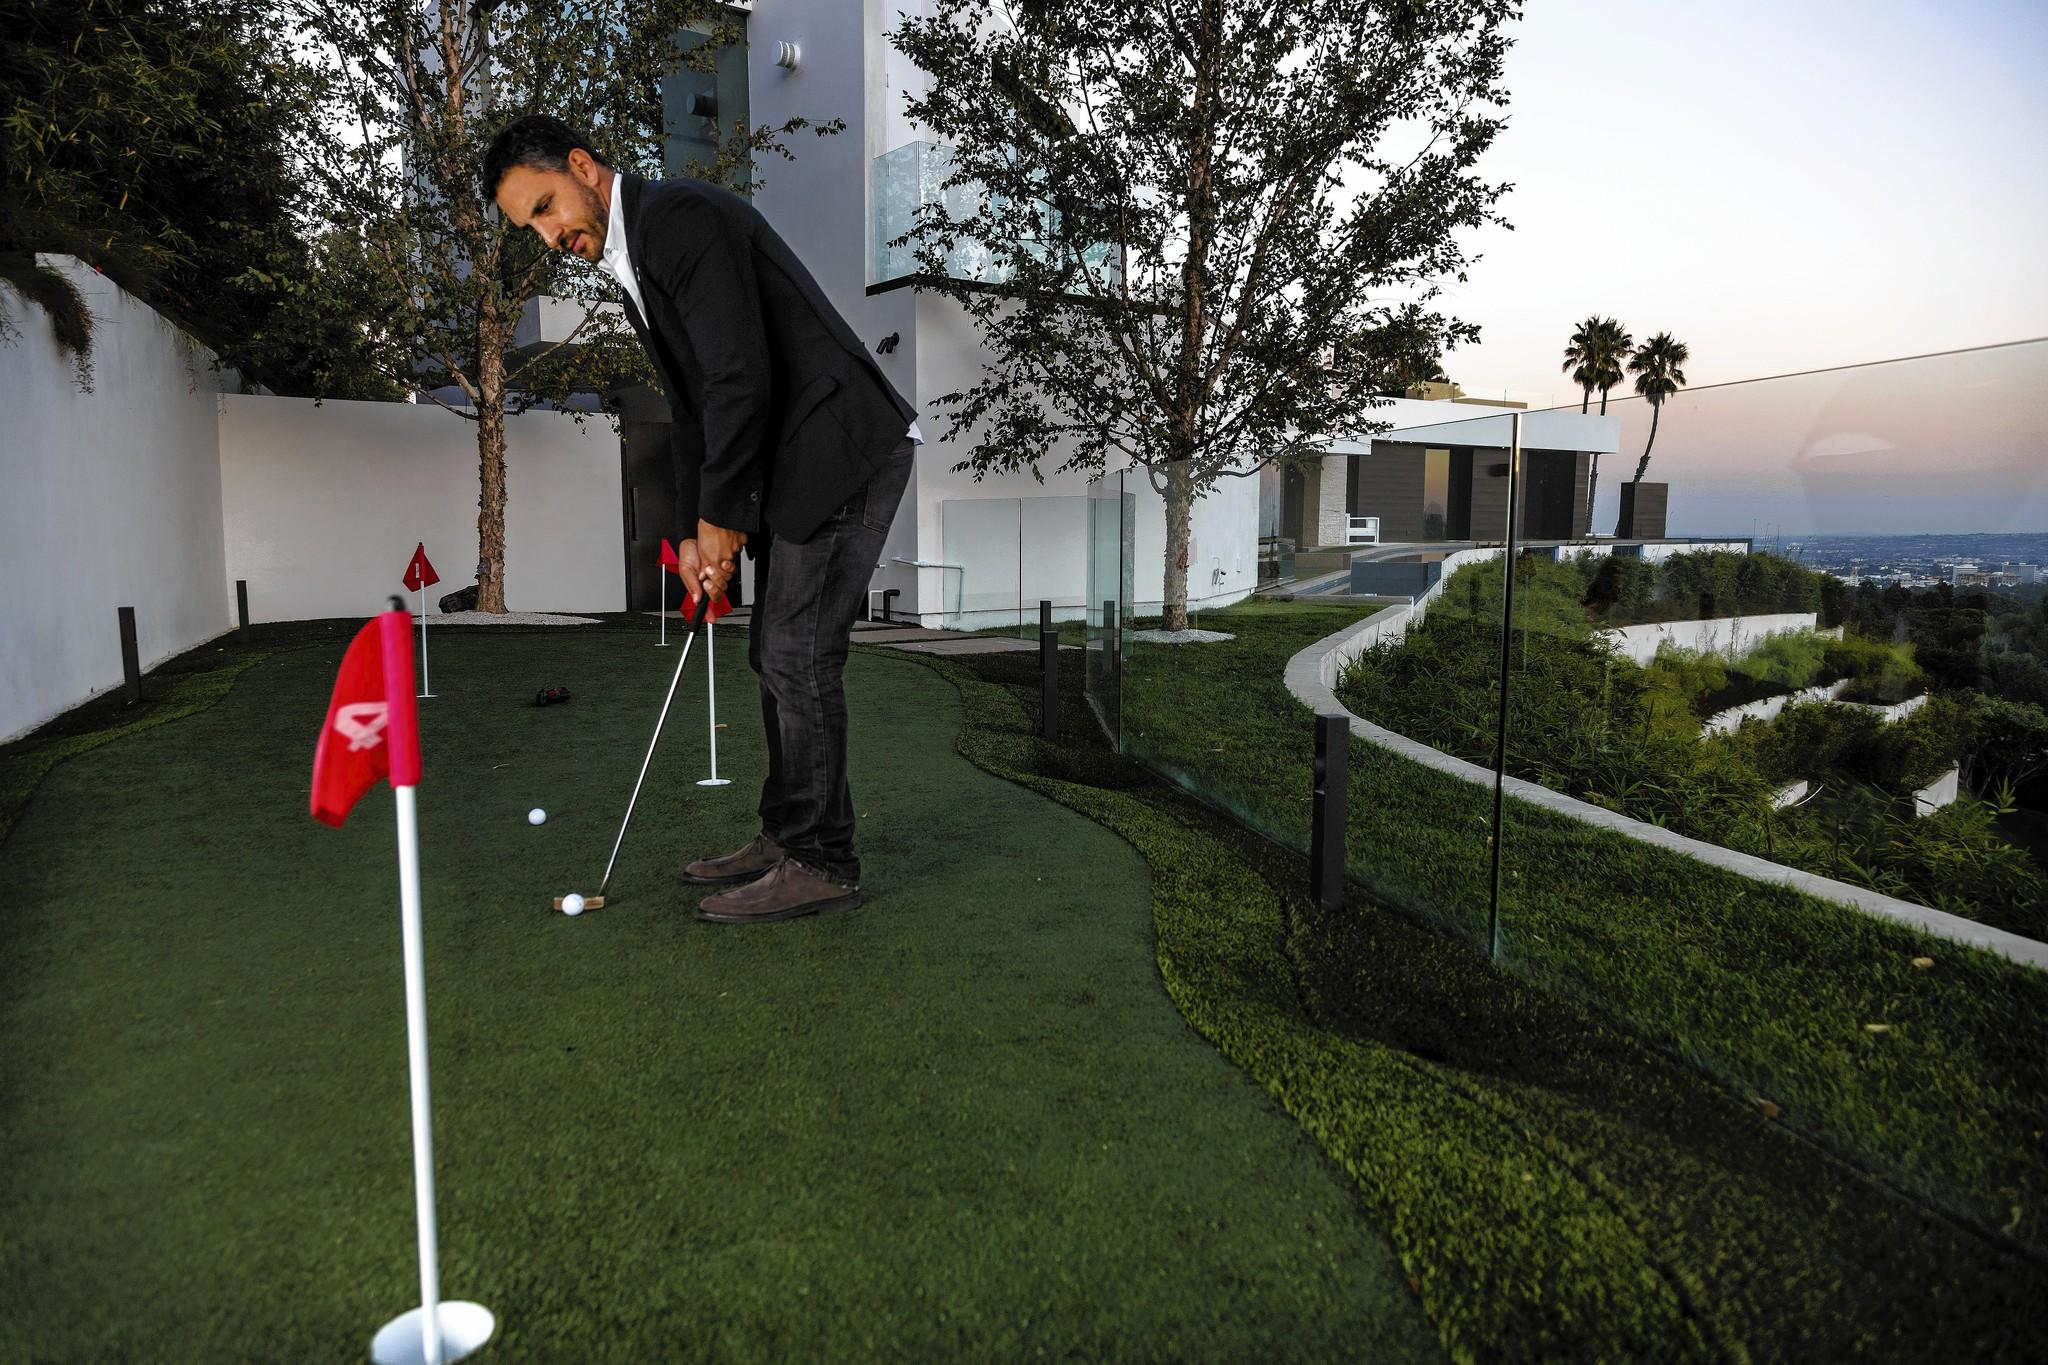 Real estate agent Mauricio Umansky tries out the putting green at a $36 million home for sale in Beverly Hills. The price includes a $300 putter.